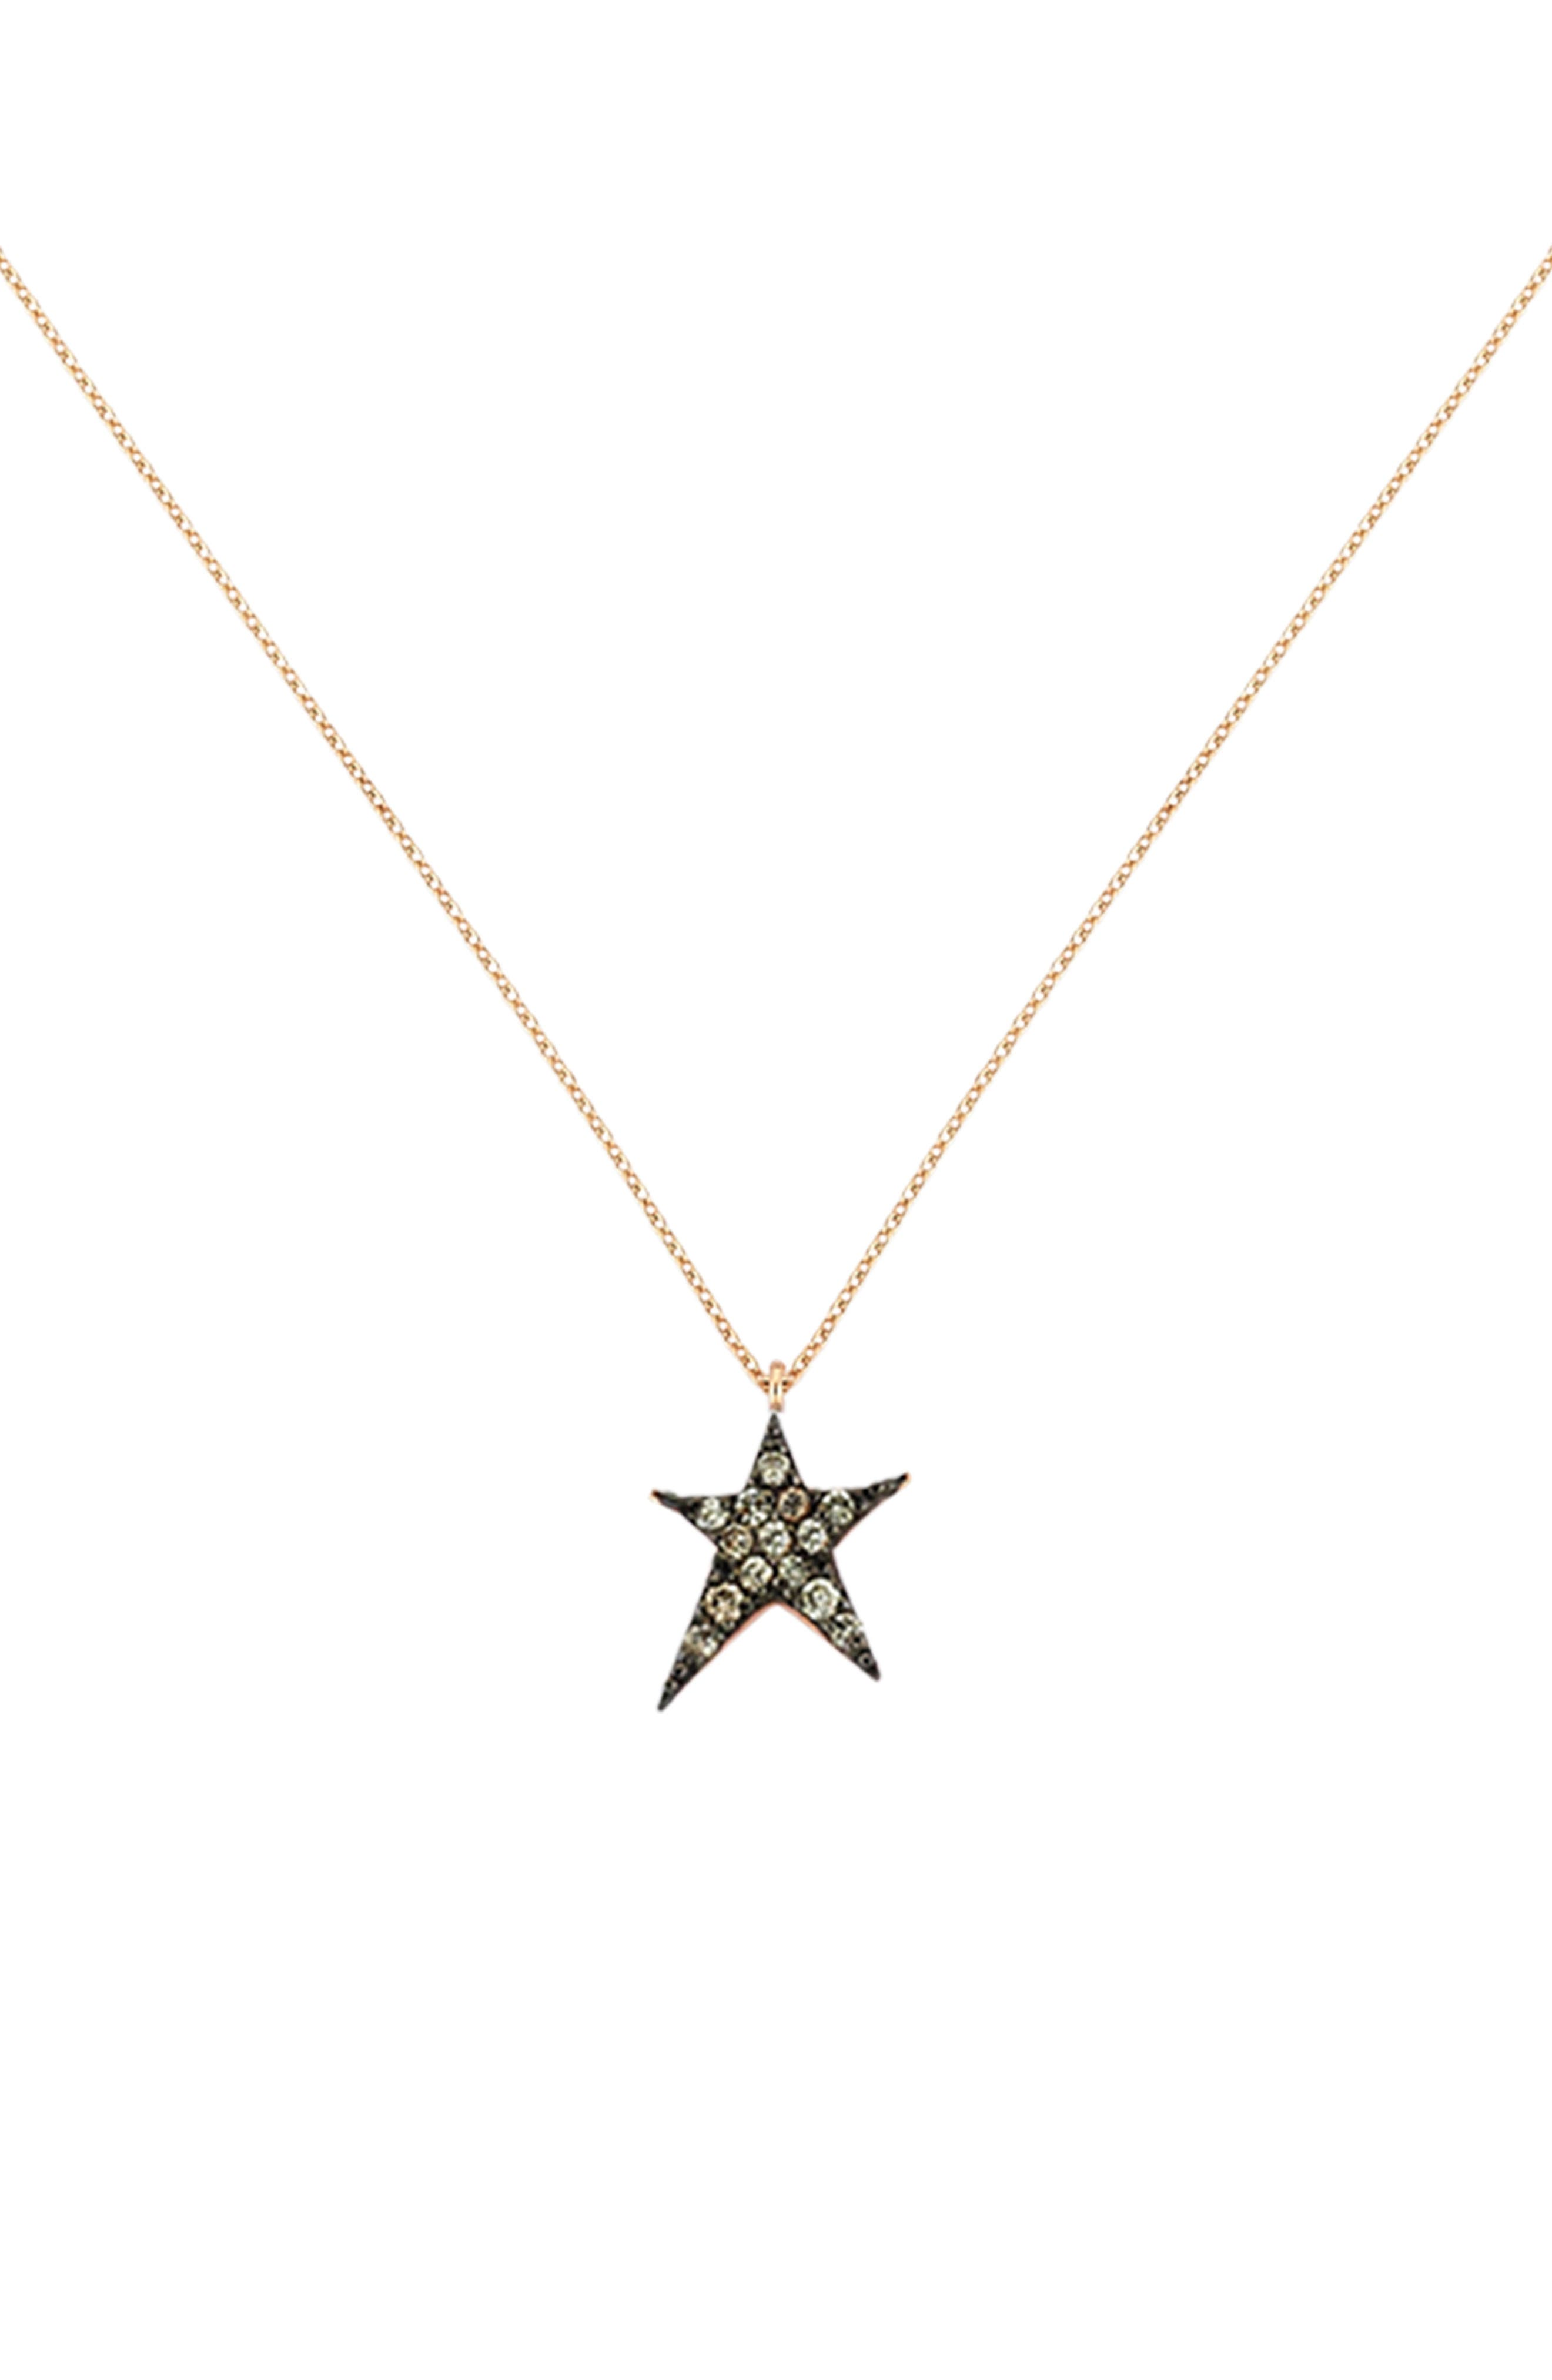 KISMET BY MILKA, Struck Star Champagne Diamond Necklace, Main thumbnail 1, color, ROSE GOLD